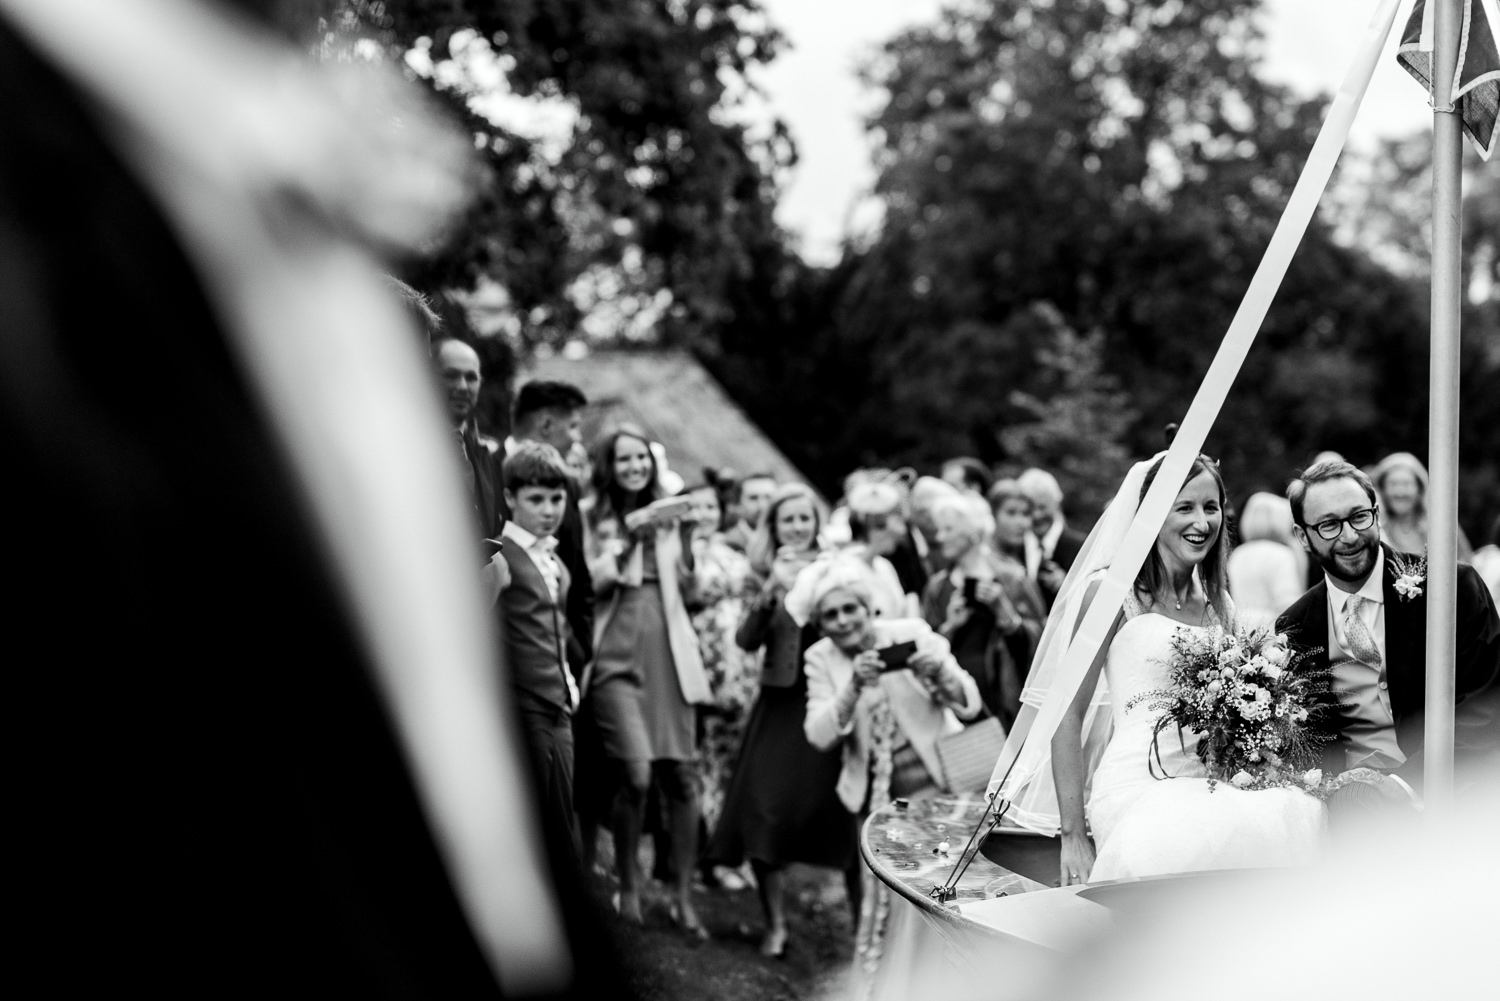 Bride and groom leaving church on boat